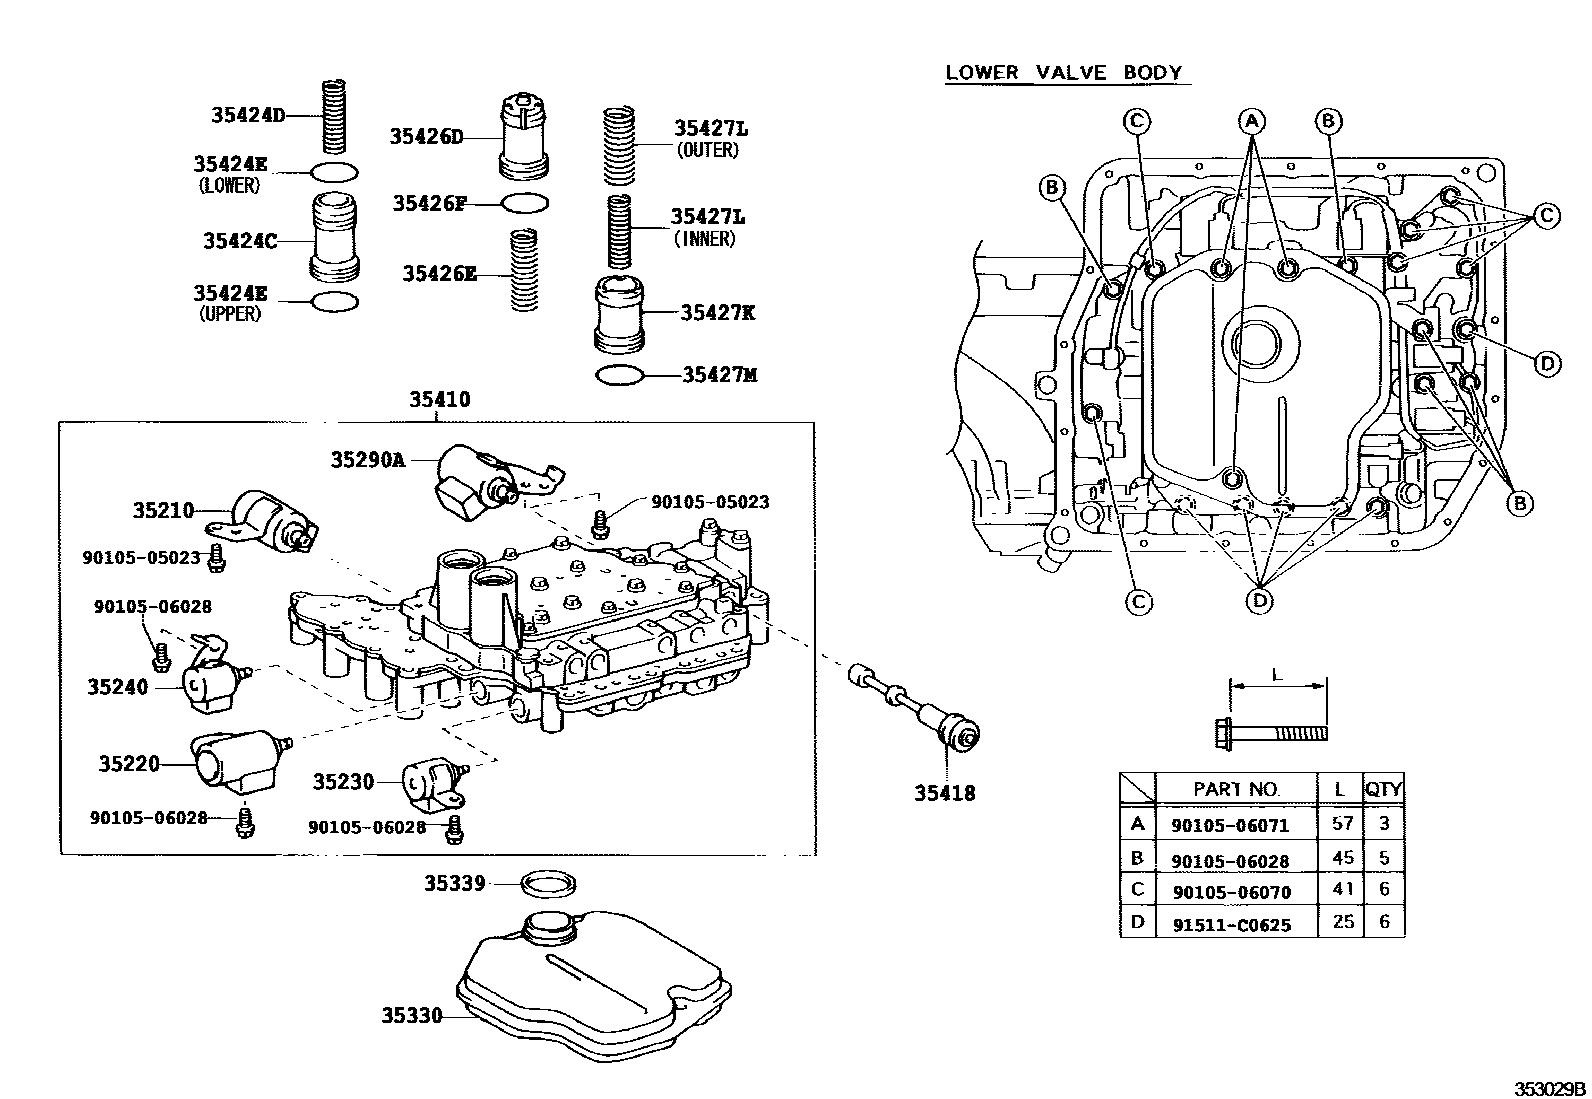 diagram of coil pack on 96 lexus es300 wiring diagram  diagram of coil pack on 96 lexus es300 #1